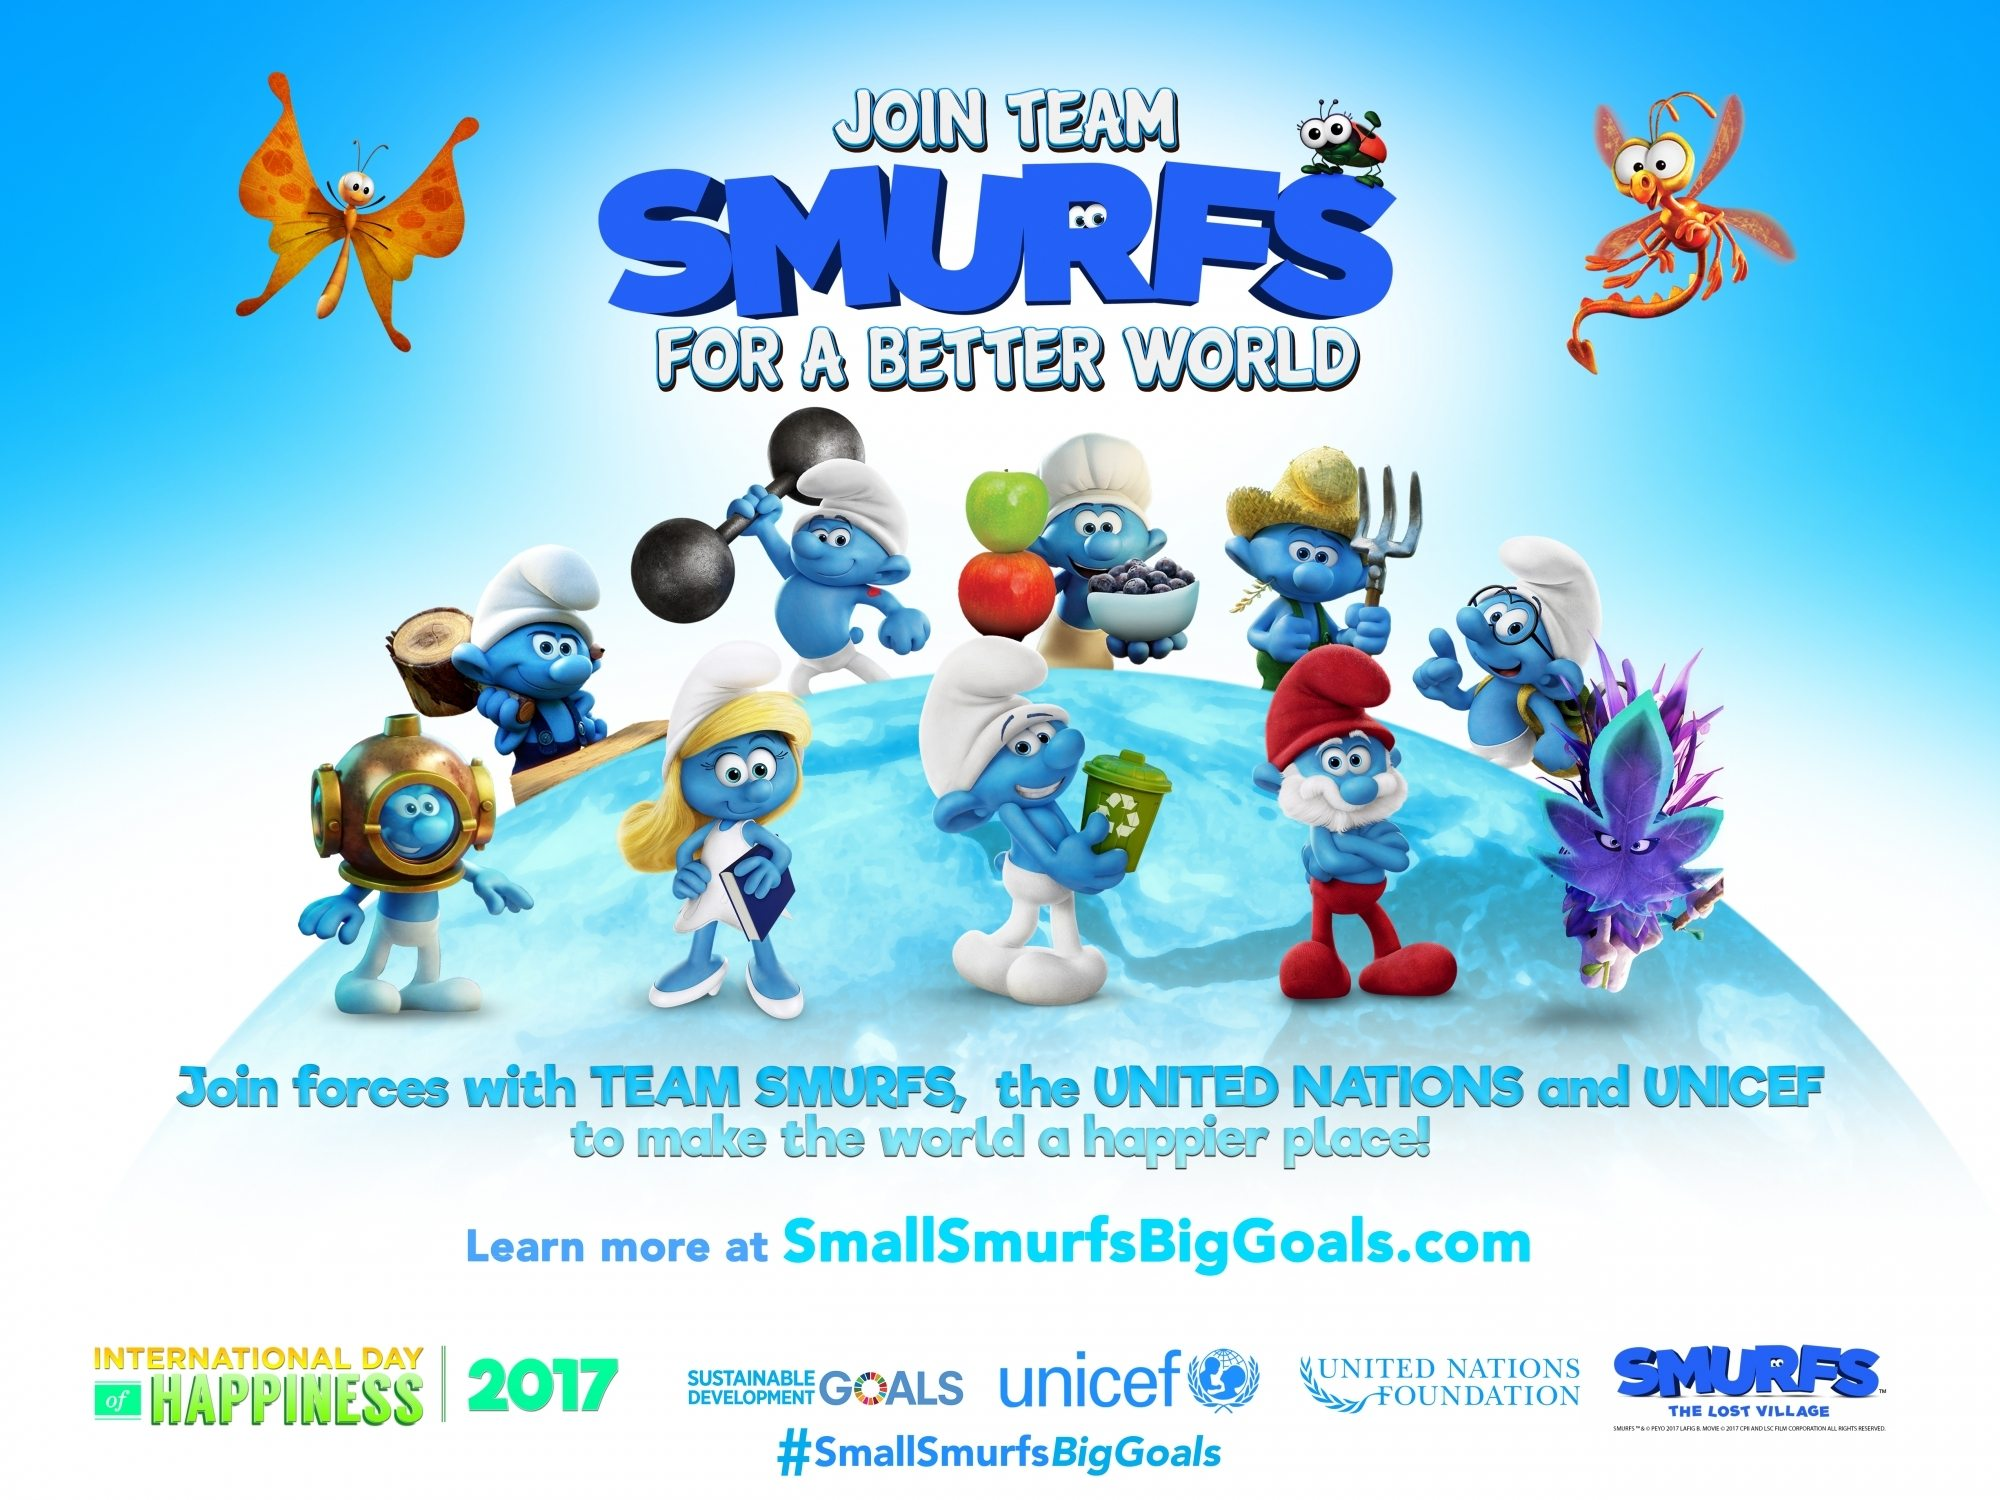 Image: Smurfs and SDGs campaign poster